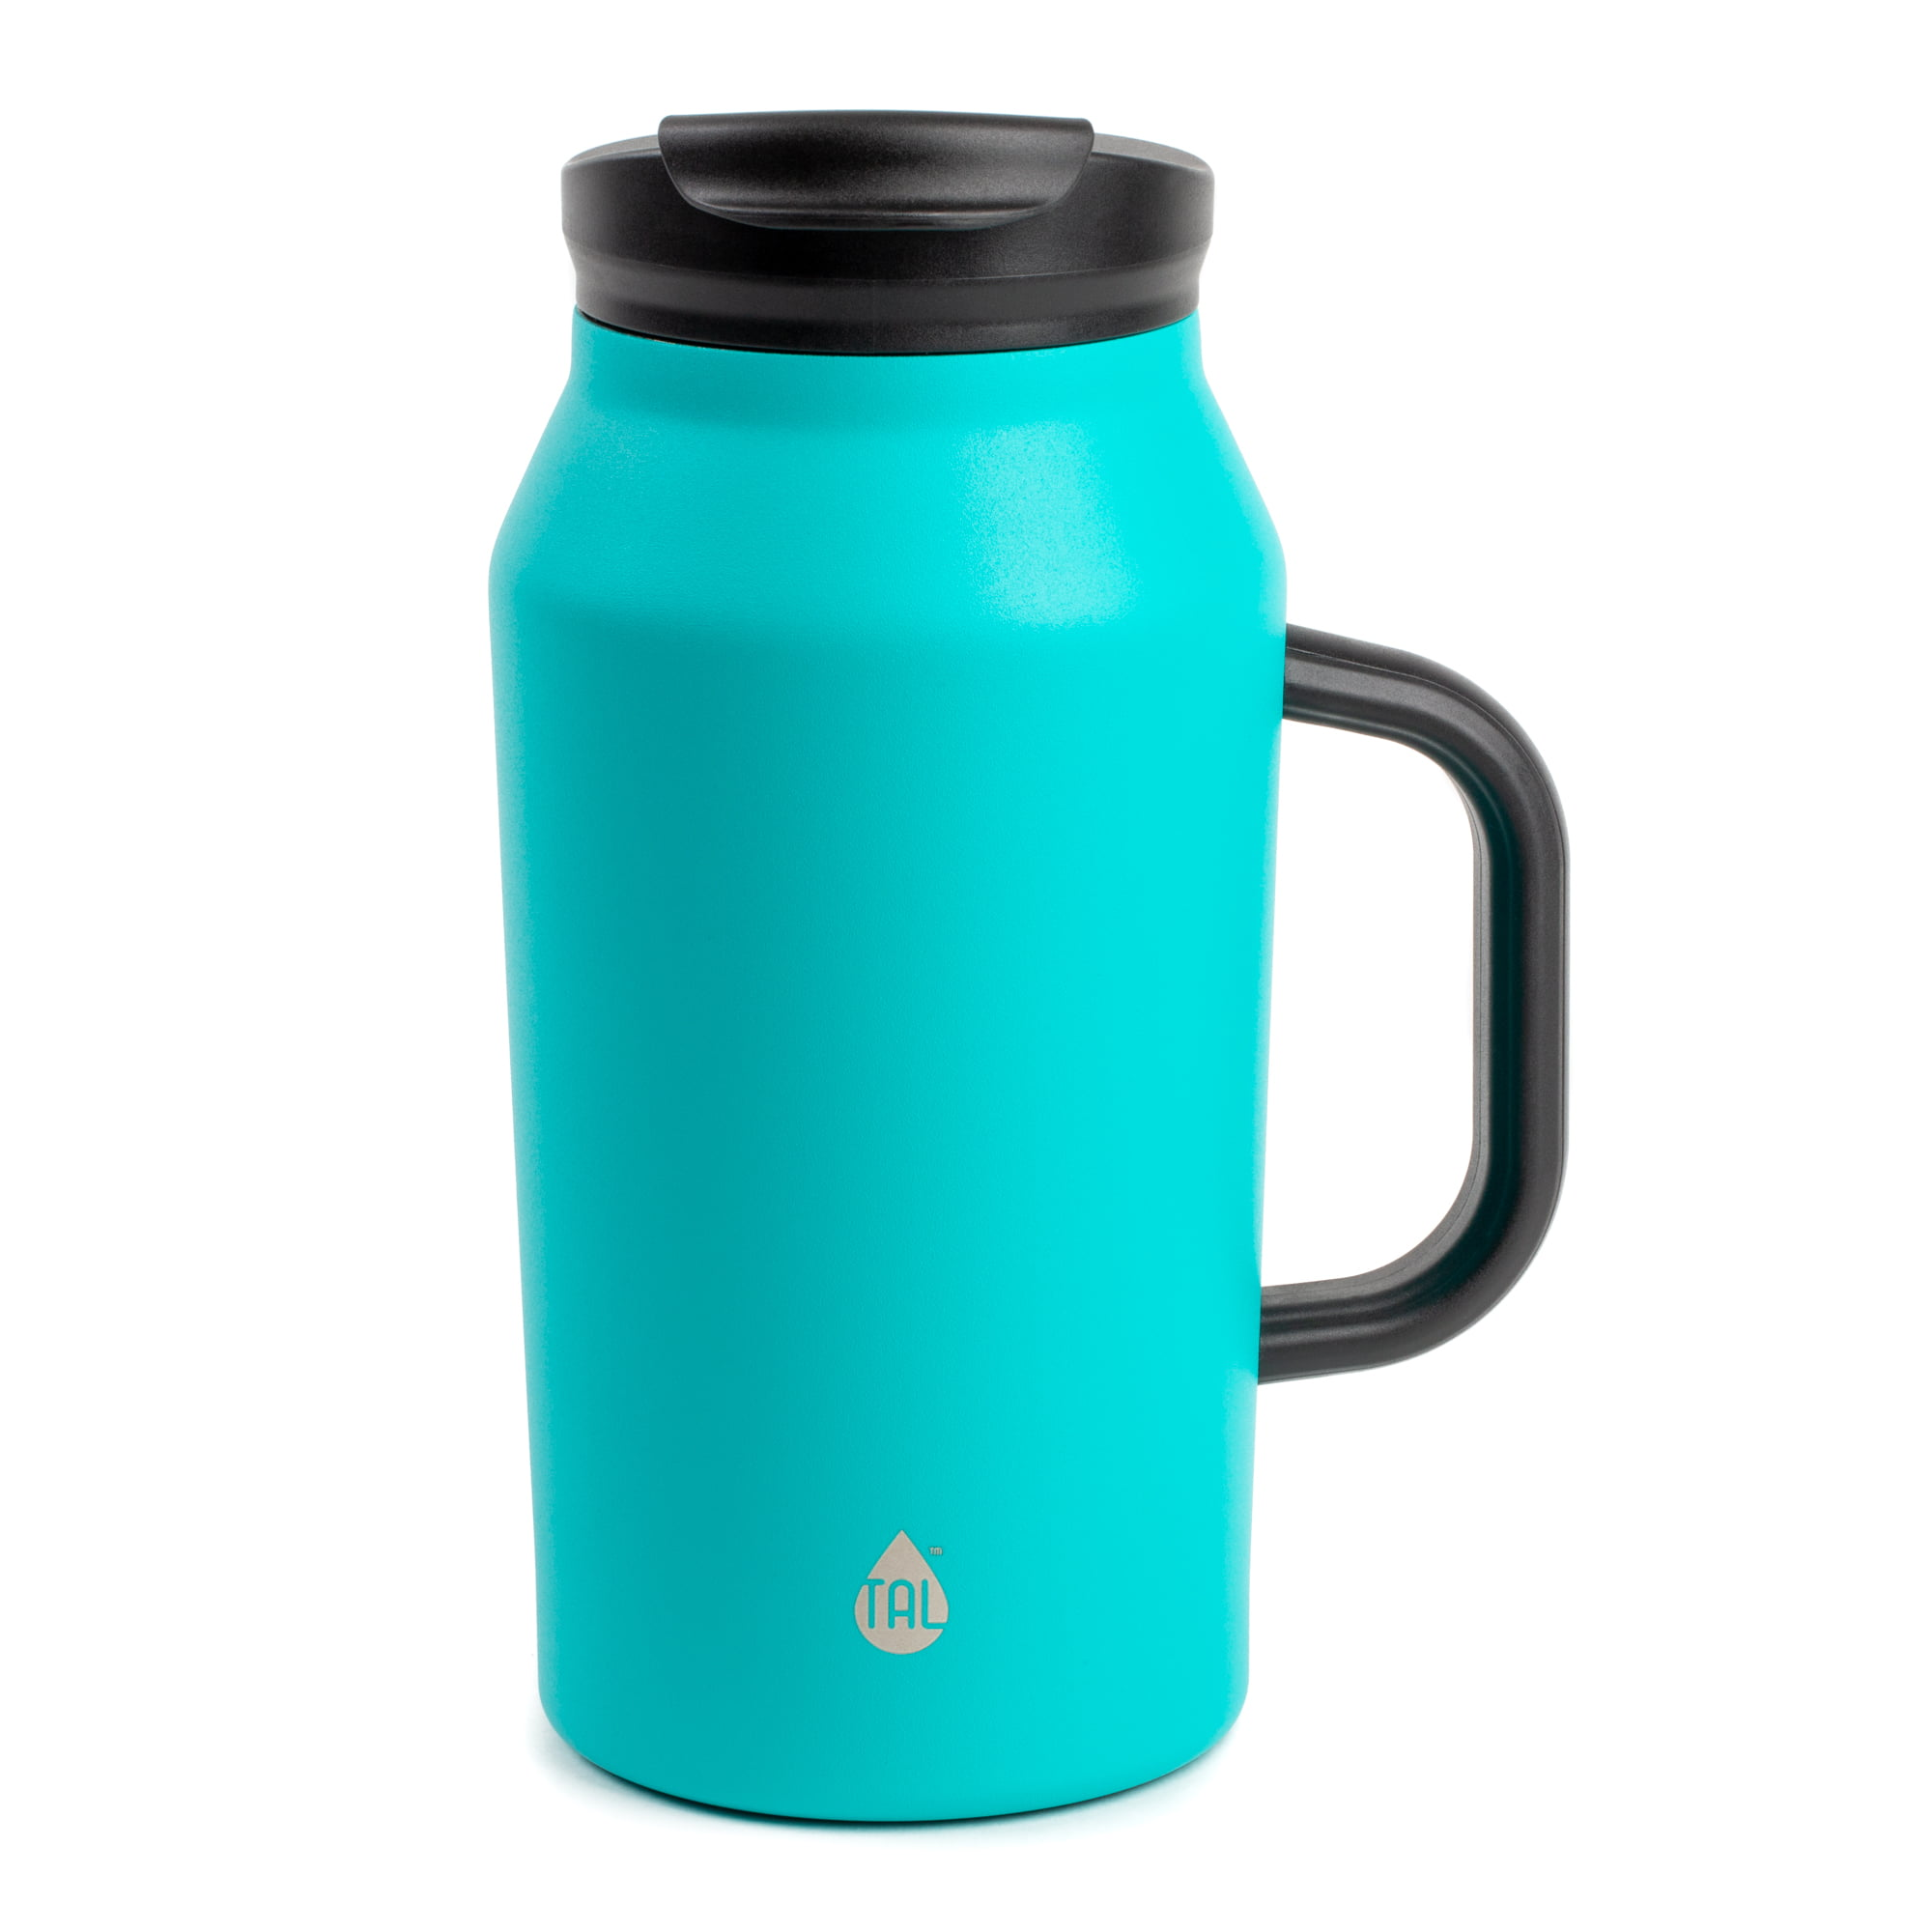 Tal 40 Ounce Stainless Steel Basin Teal Water Bottle